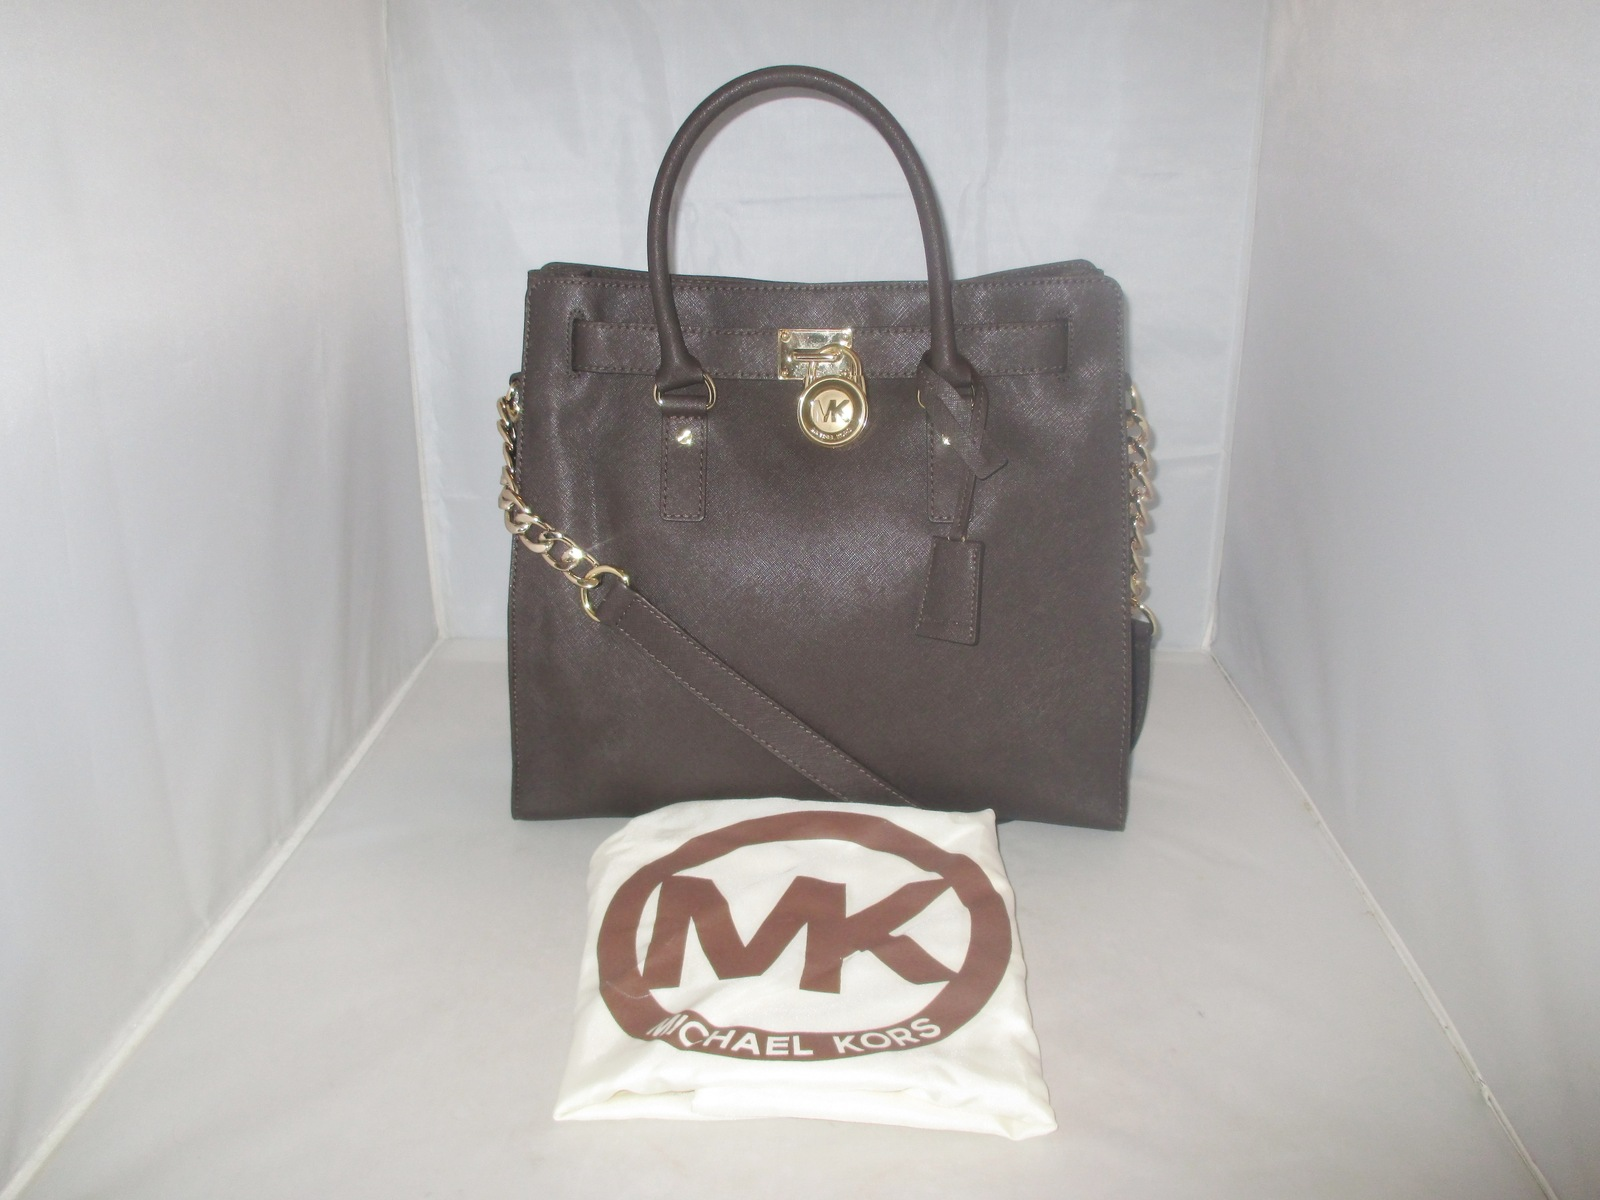 94b1e410b95c Img 6338. Img 6338. Previous. Michael Kors Handbag, Hamilton Large Saffiano Leather  Tote, Shoulder Bag $358